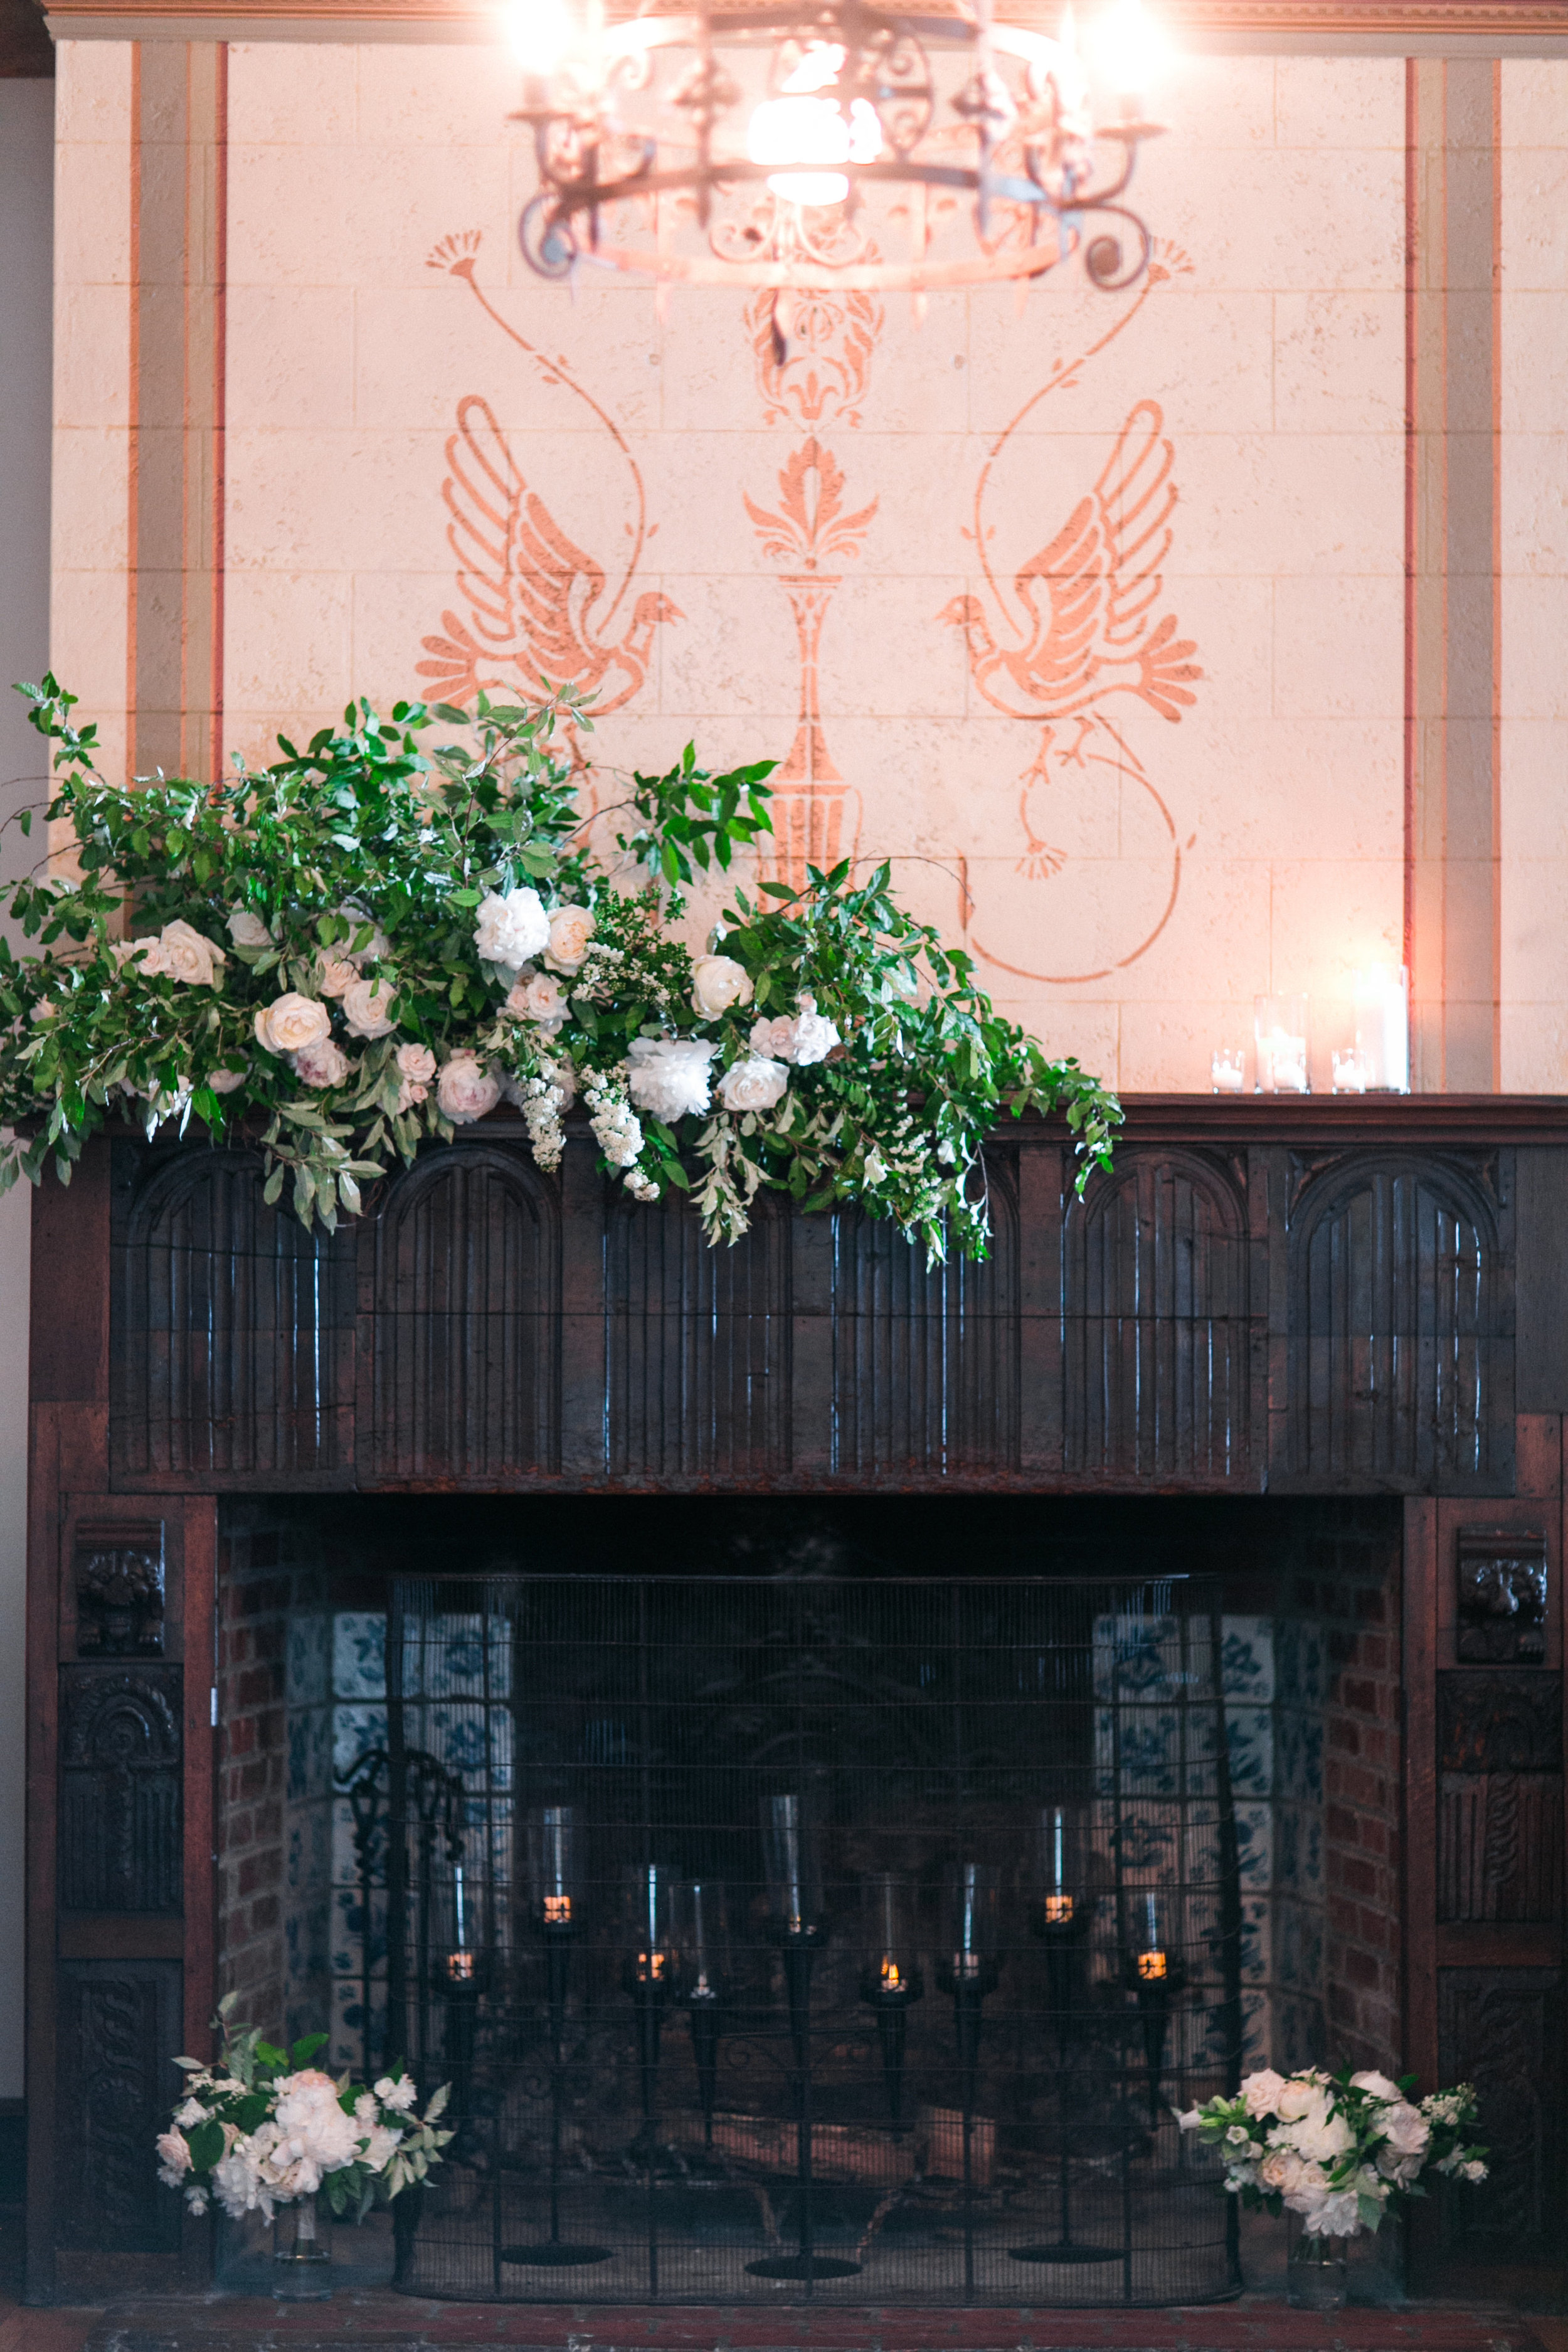 Cloisters Wedding by Nicki Metcalf Photography and East Made Event Company-0031.jpg